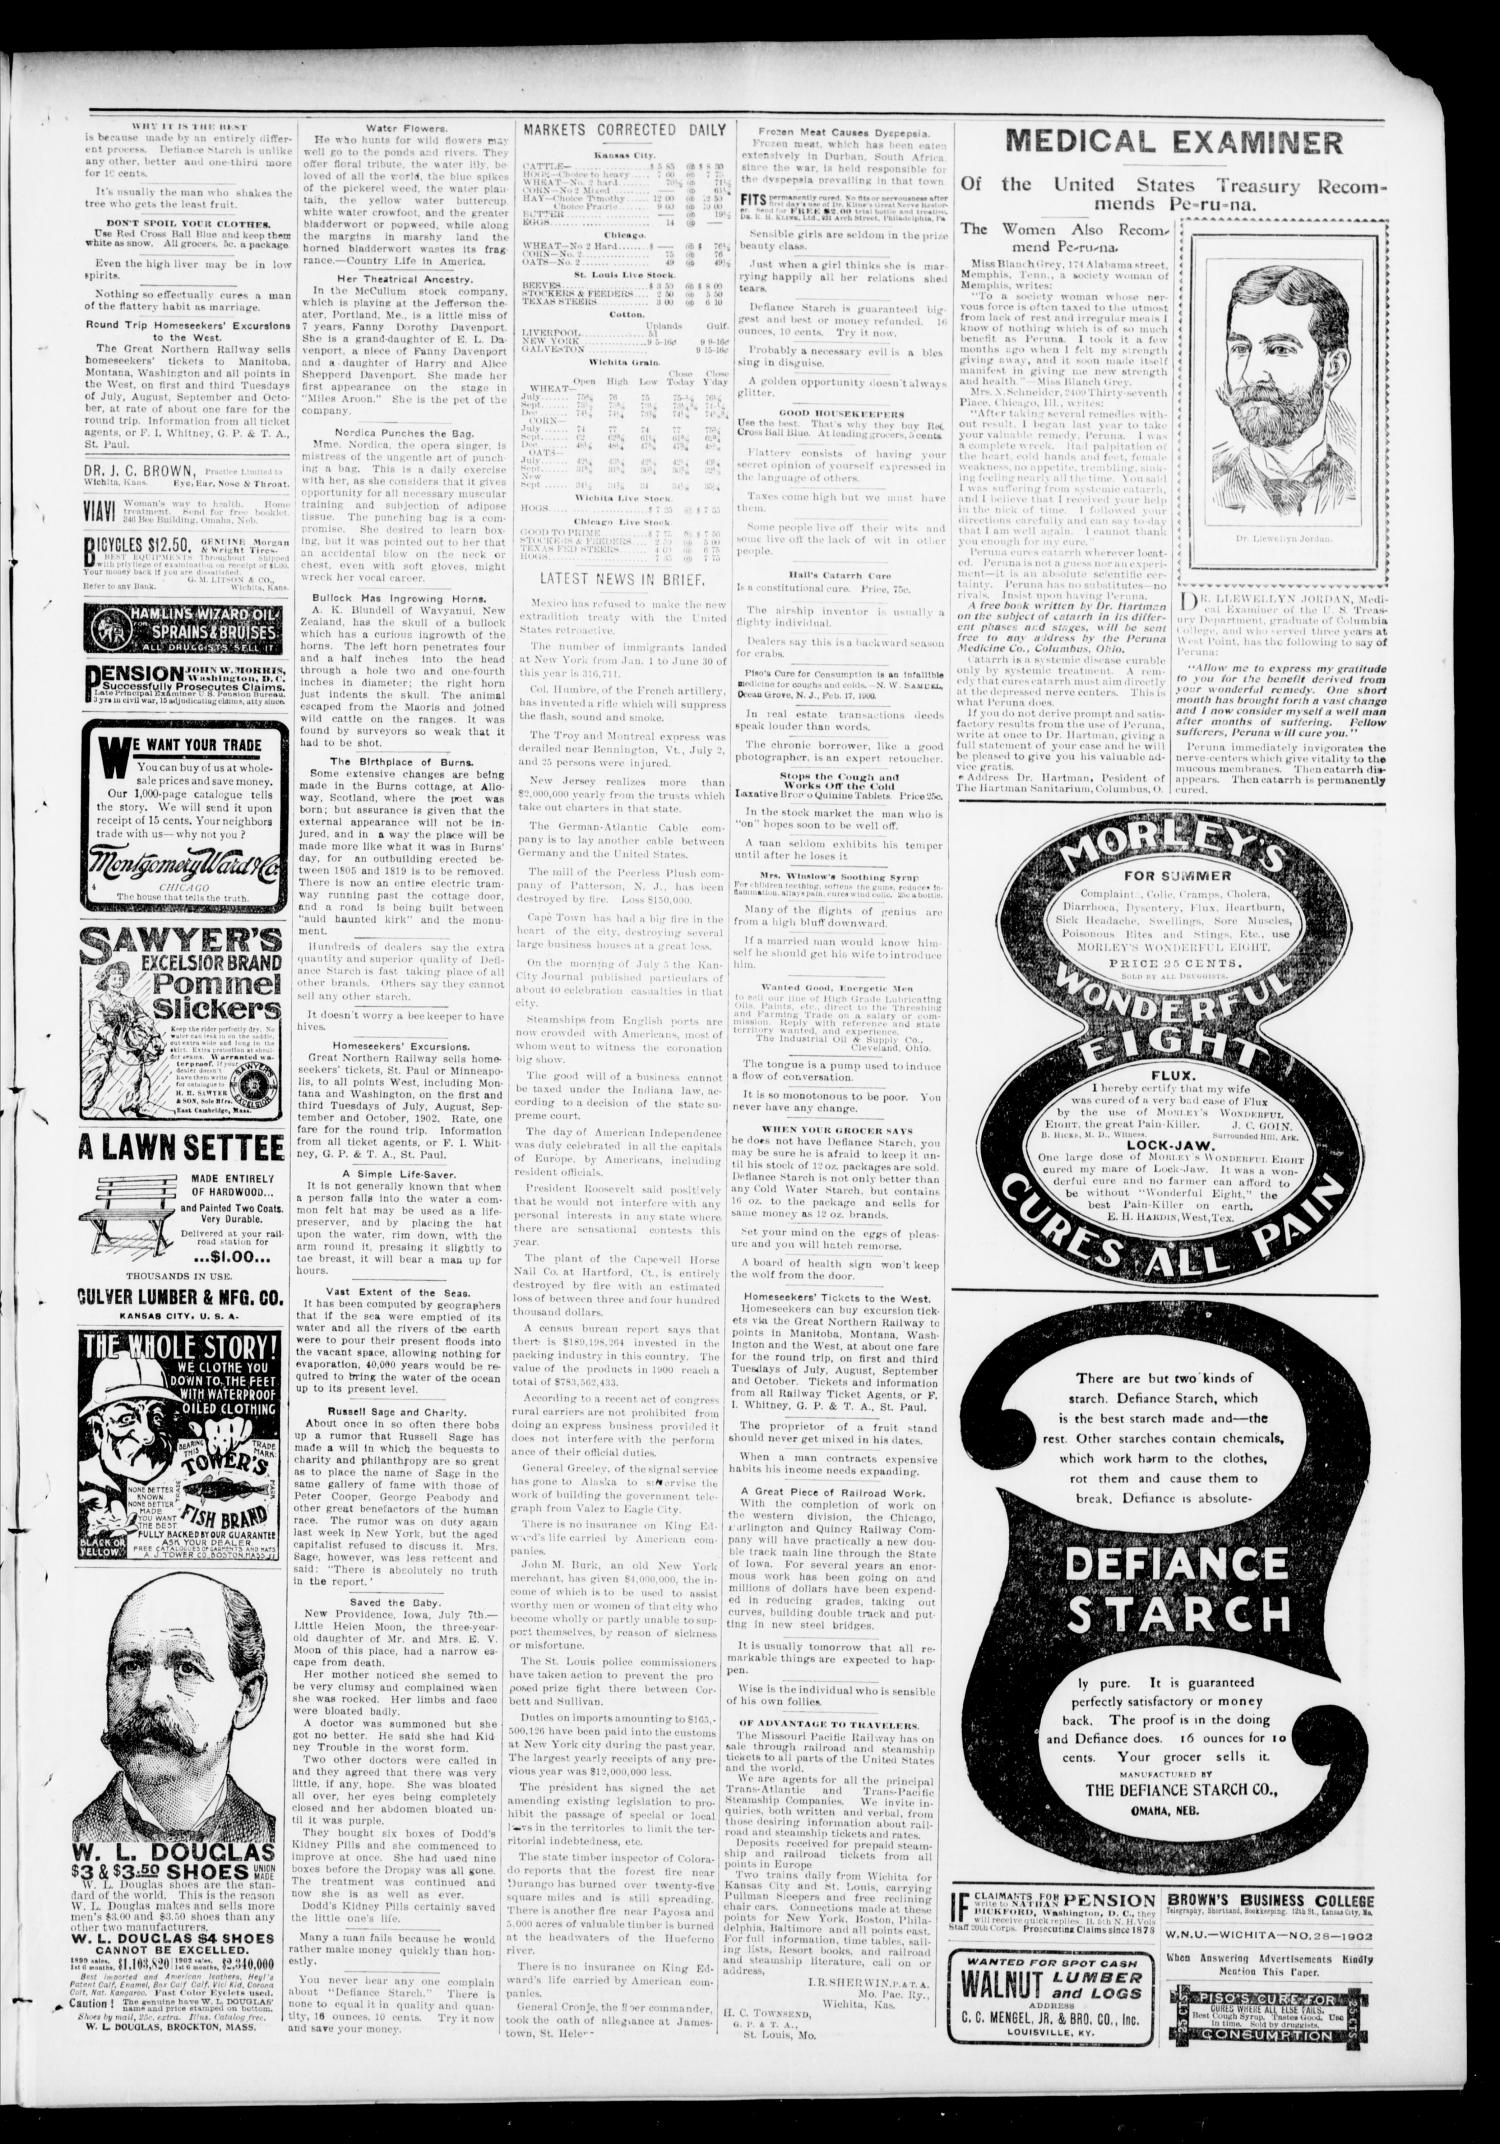 The Press-Democrat. (Hennessey, Okla.), Vol. 10, No. 41, Ed. 1 Friday, July 11, 1902                                                                                                      [Sequence #]: 3 of 8